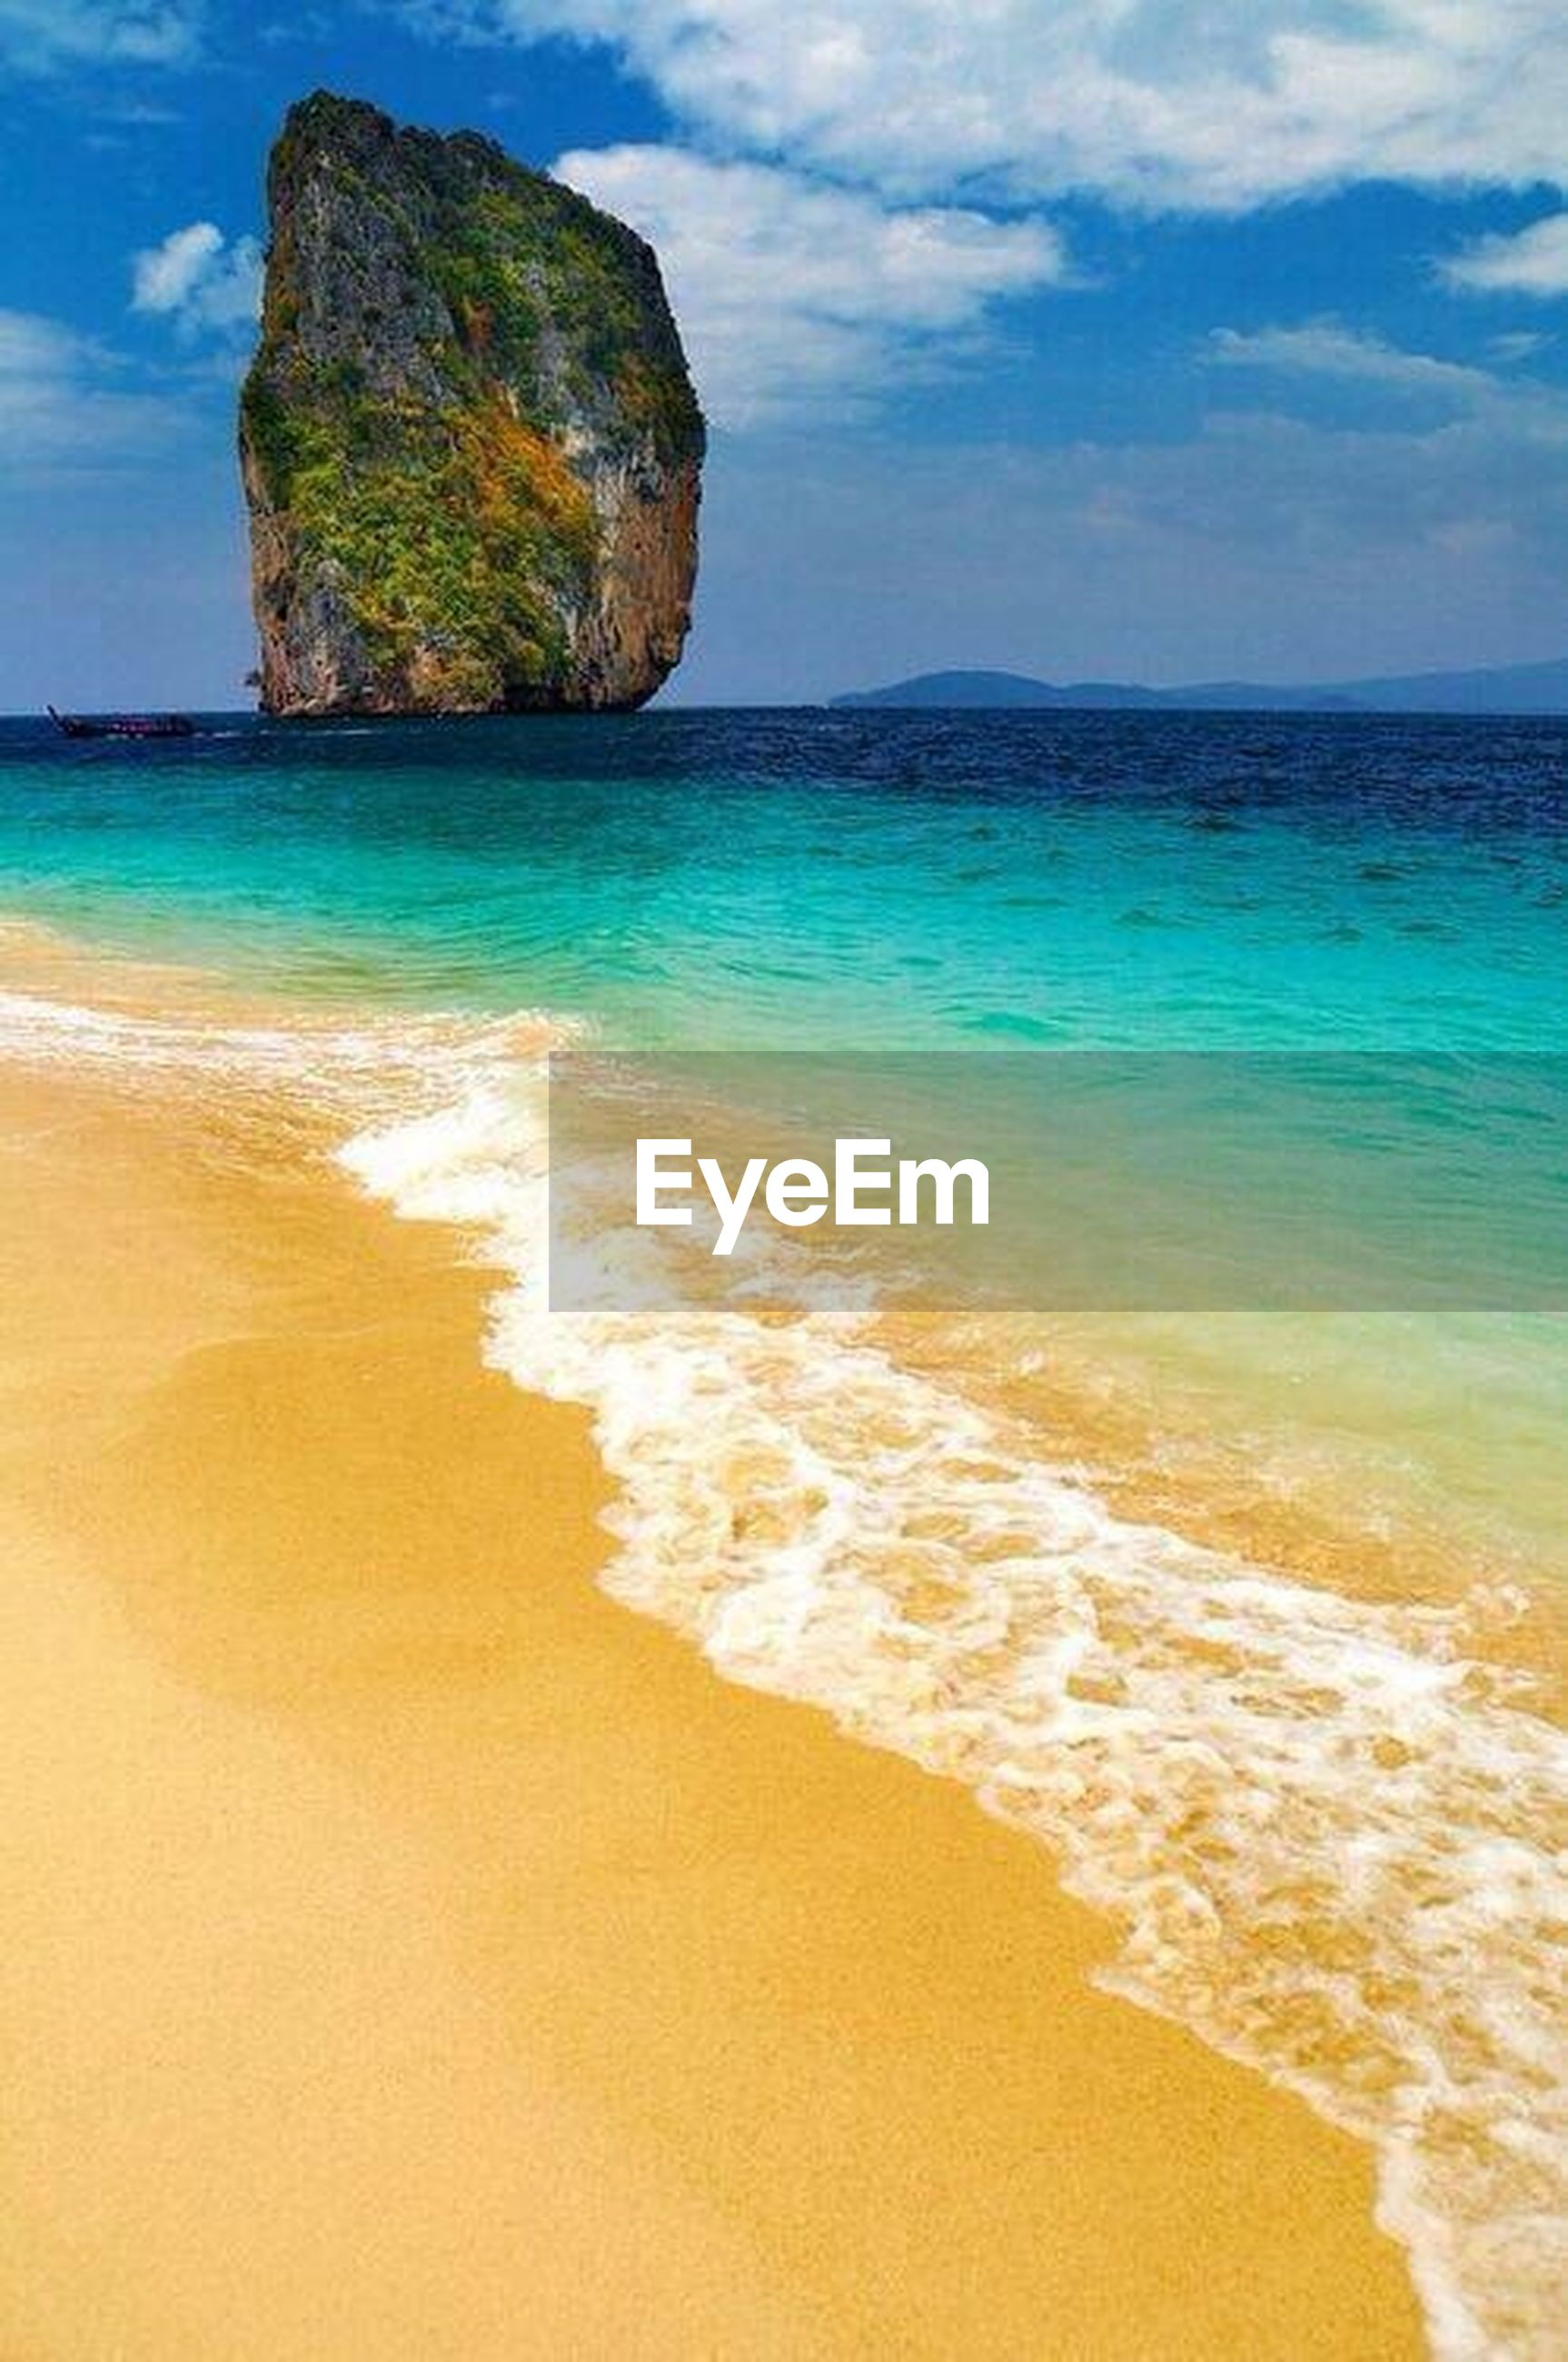 sea, beach, water, horizon over water, sand, shore, sky, tranquil scene, scenics, tranquility, beauty in nature, nature, coastline, idyllic, blue, vacations, wave, cloud, rock formation, cloud - sky